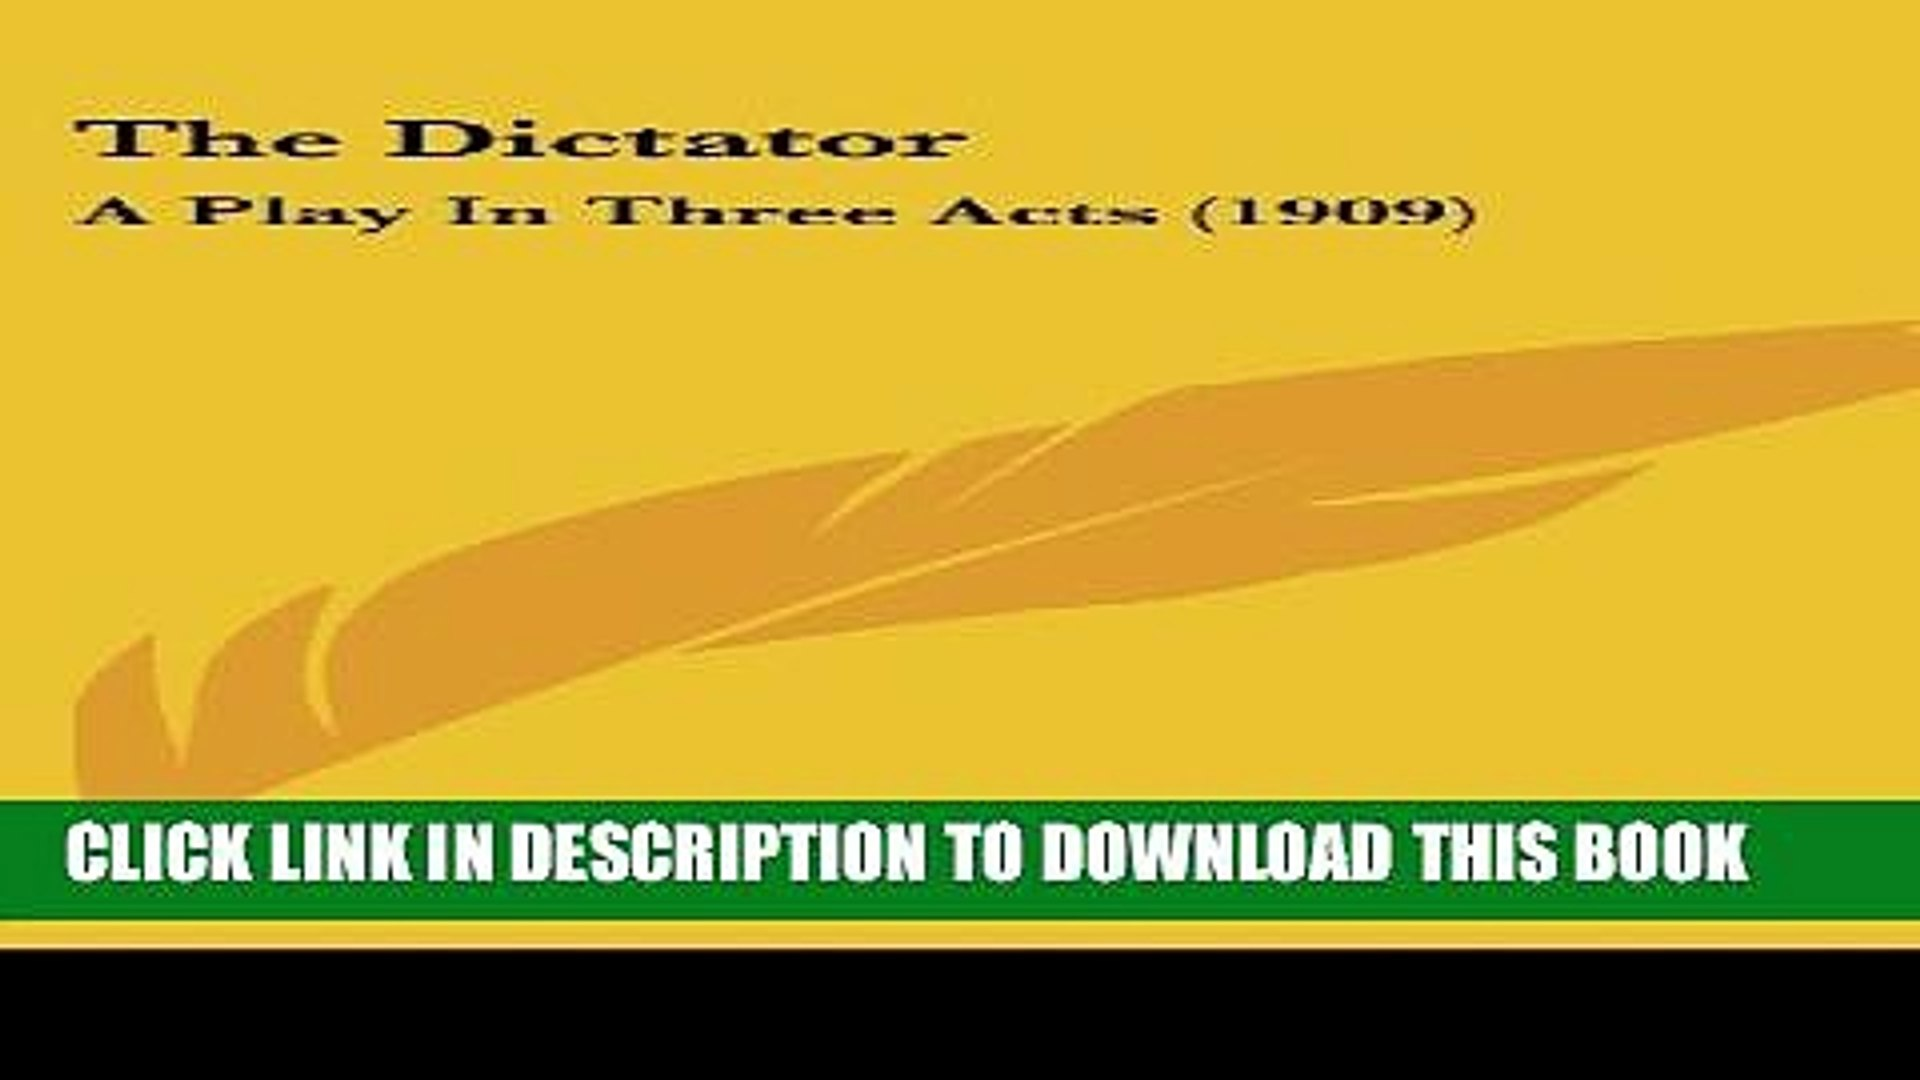 Collection Book The Dictator: A Play In Three Acts (1909)